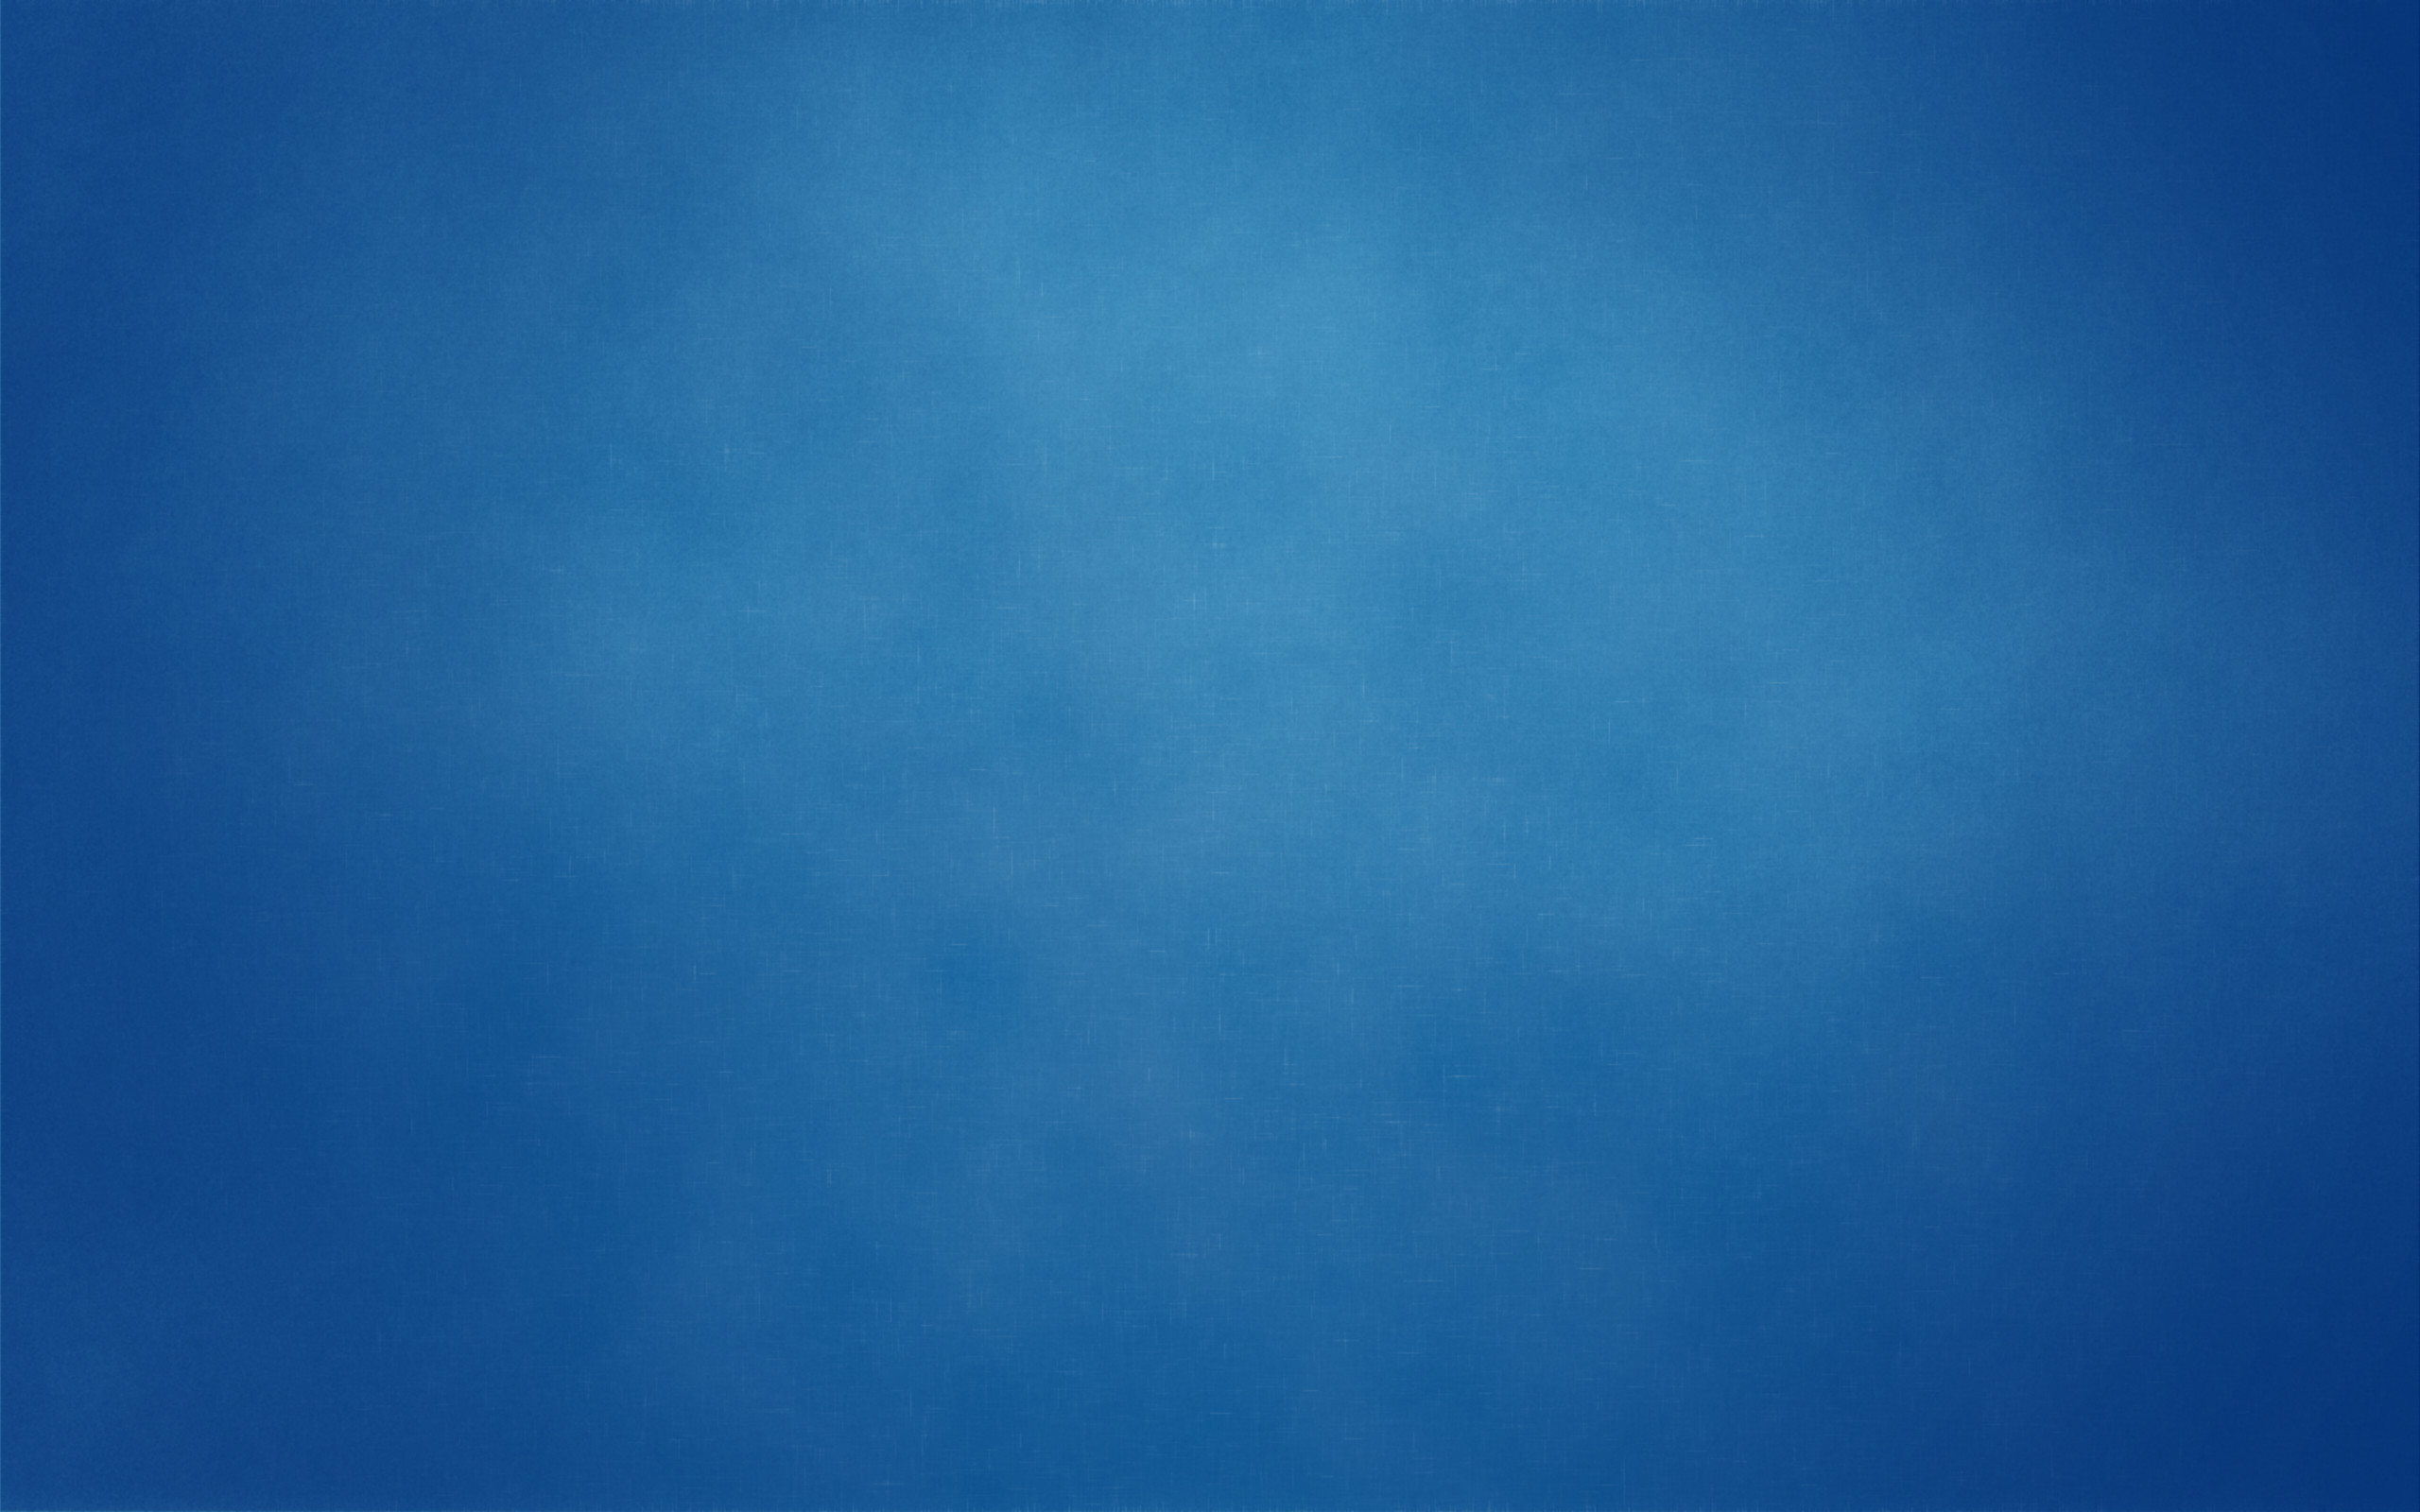 2560x1600 Photo of Navy Blue in FHDQ